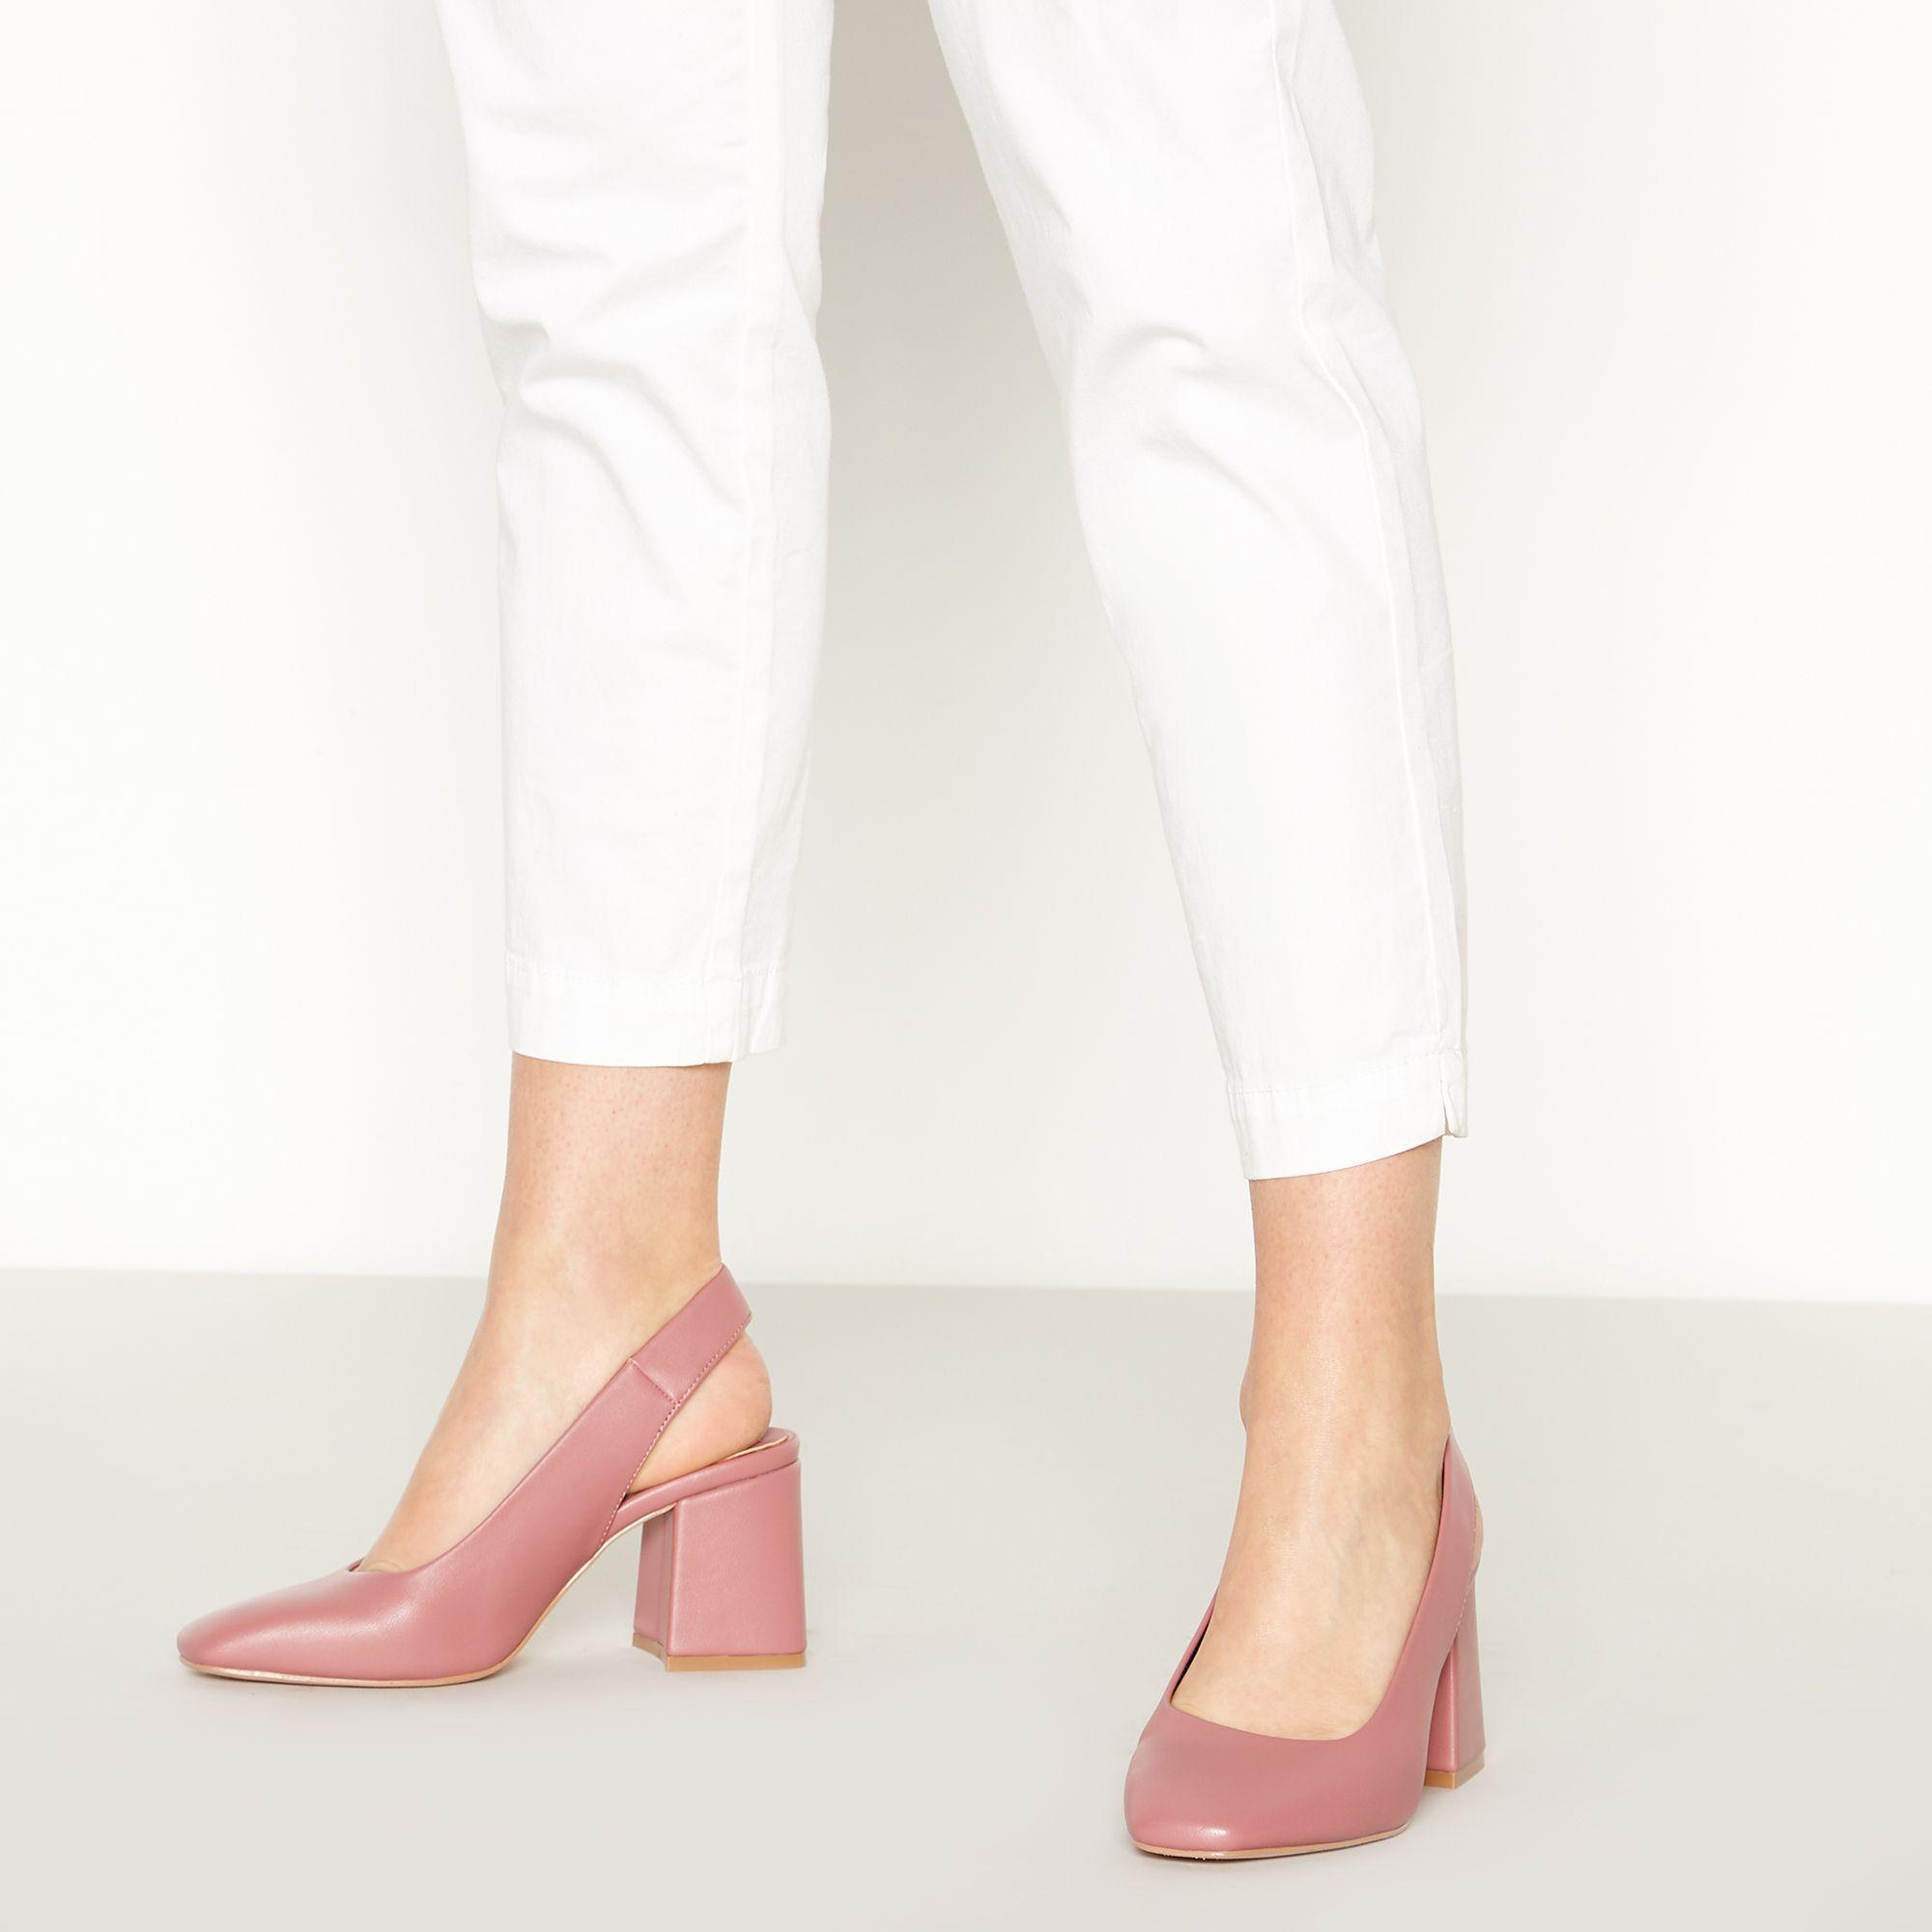 3c3af4cce Faith Pink  clock  Mid Block Heel Slingbacks in Pink - Lyst